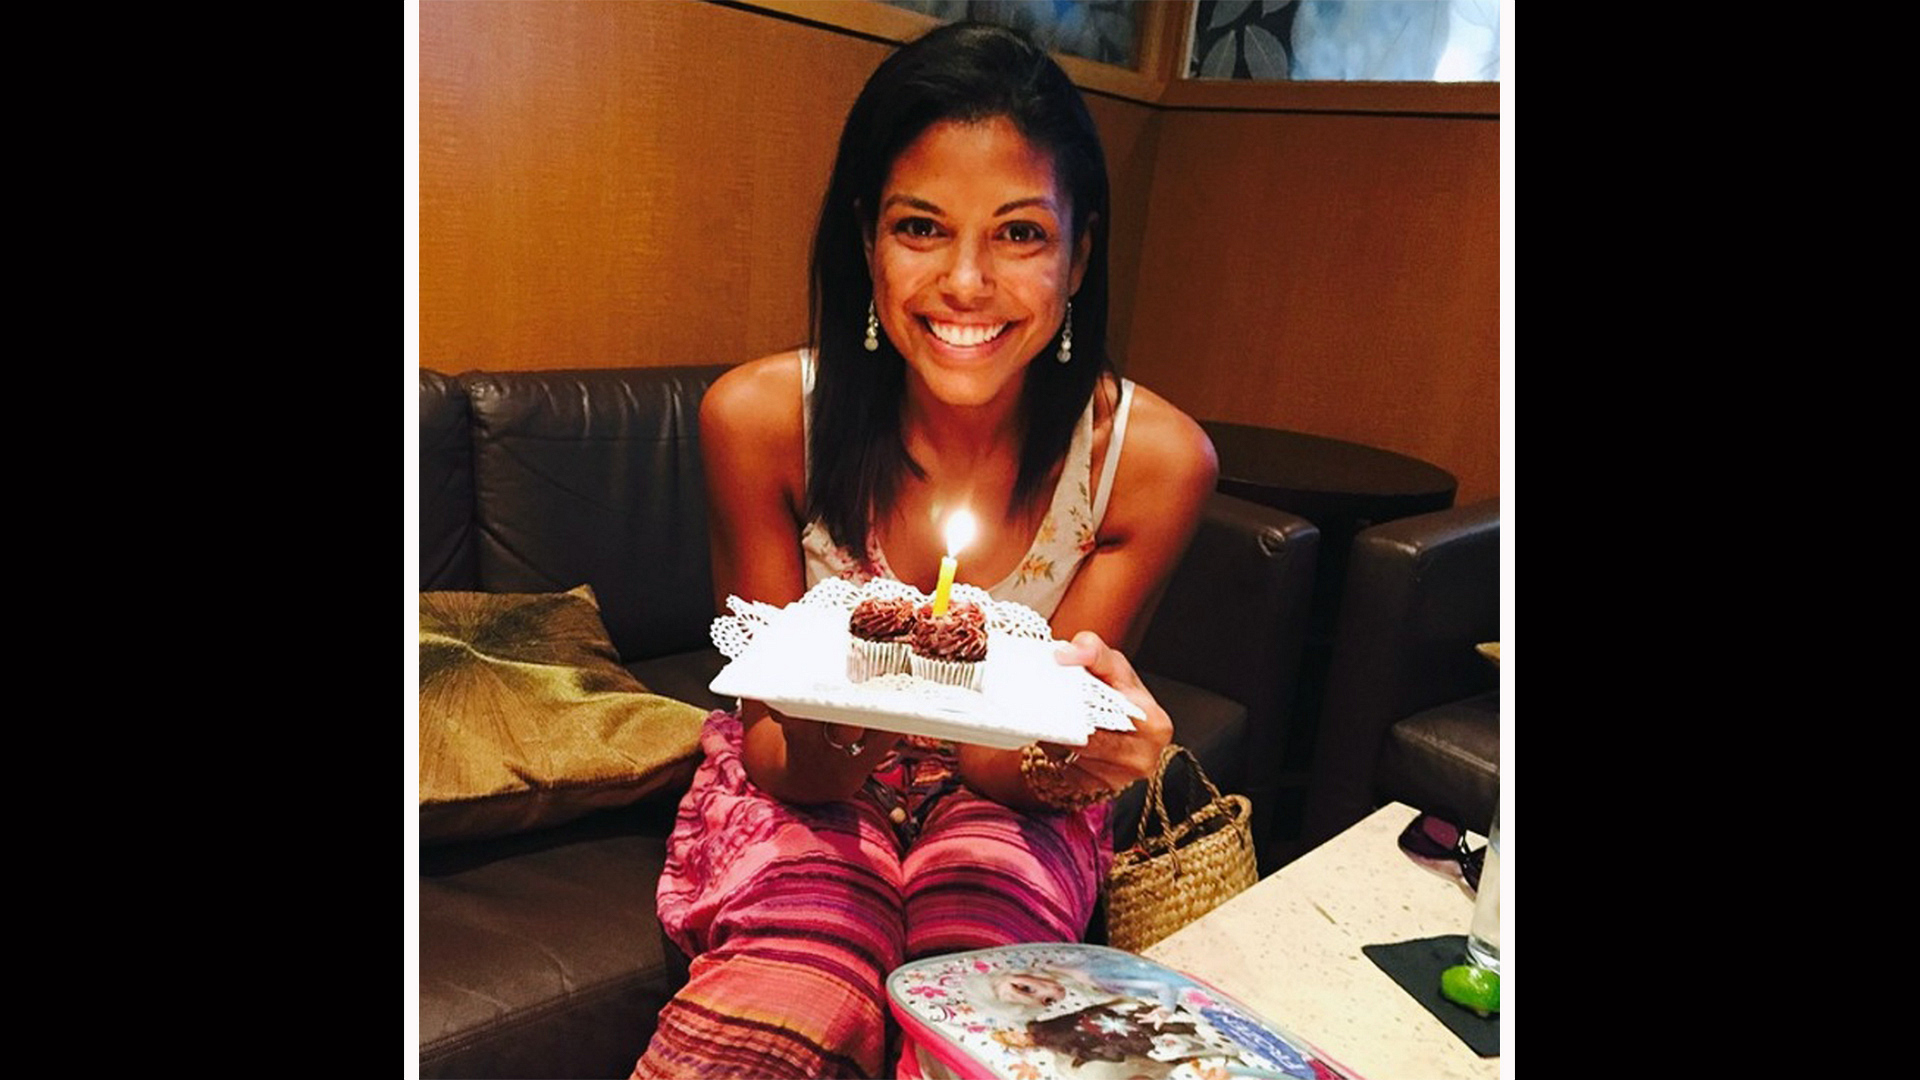 Karla Mosley radiates on her special day.